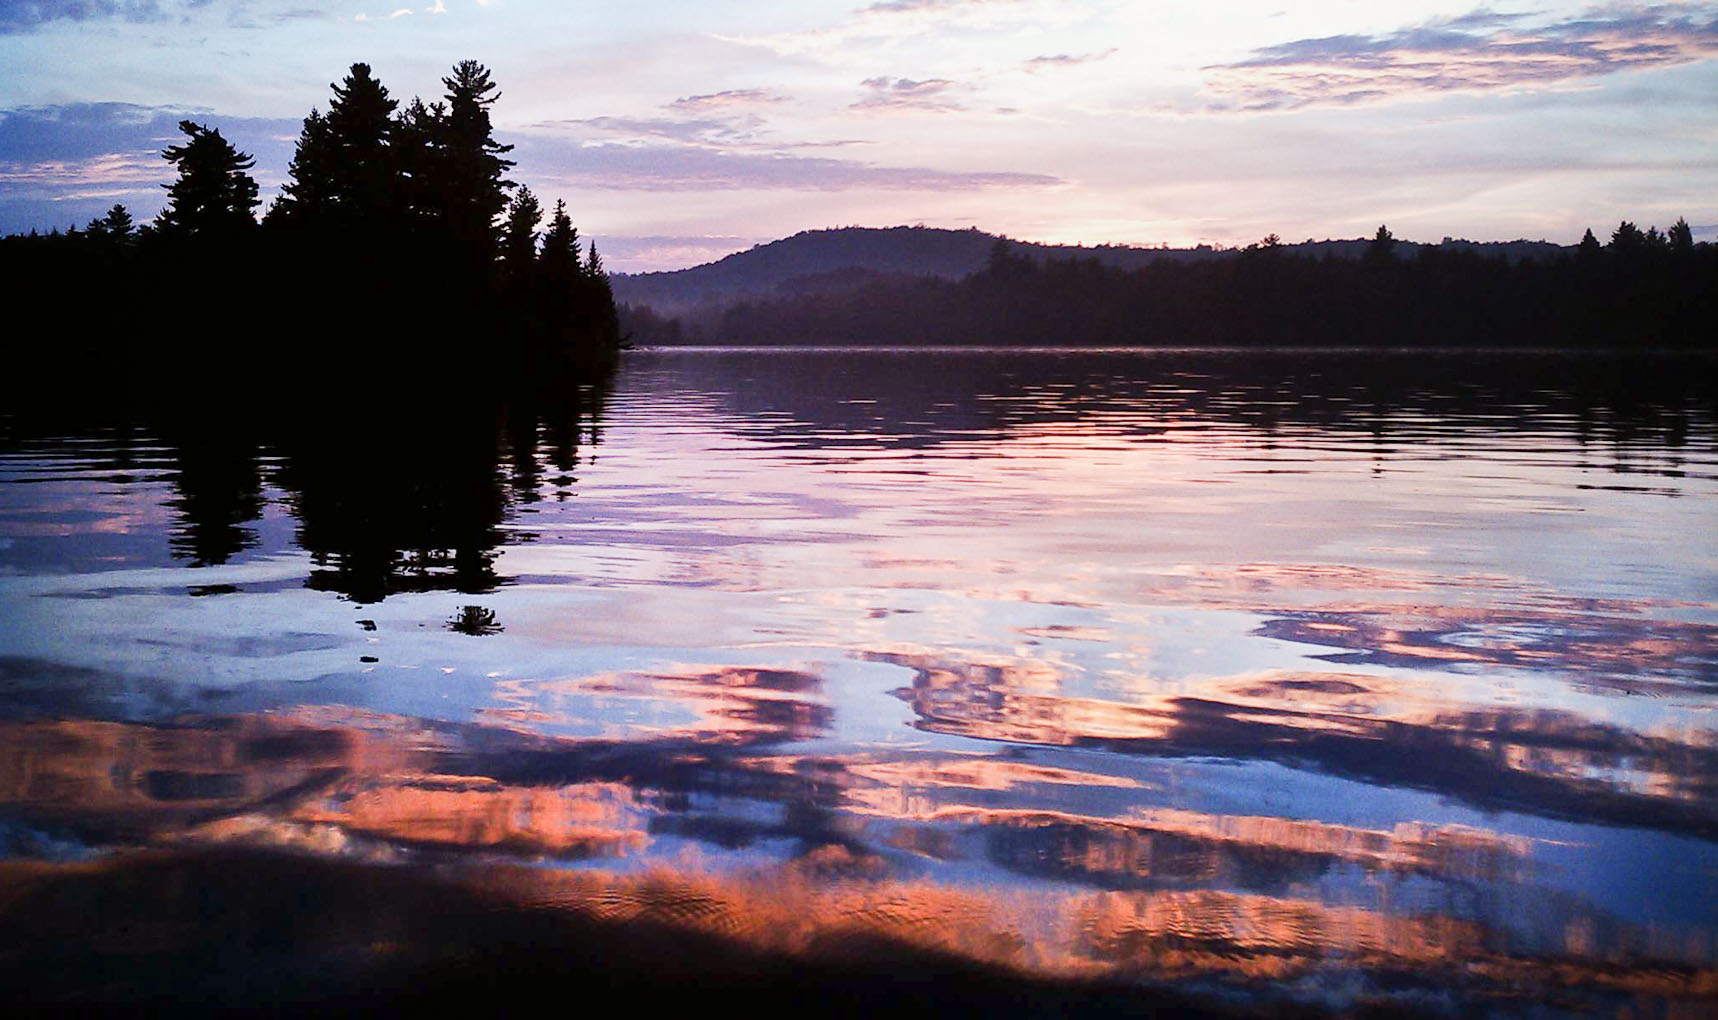 tupper lake single personals Welcome to tupper lake, new york, the crossroads of the adirondacks government services are provided by the town of tupper lake and the village of tupper lake whether you are here for a weekend or a lifetime, enjoy your stay.